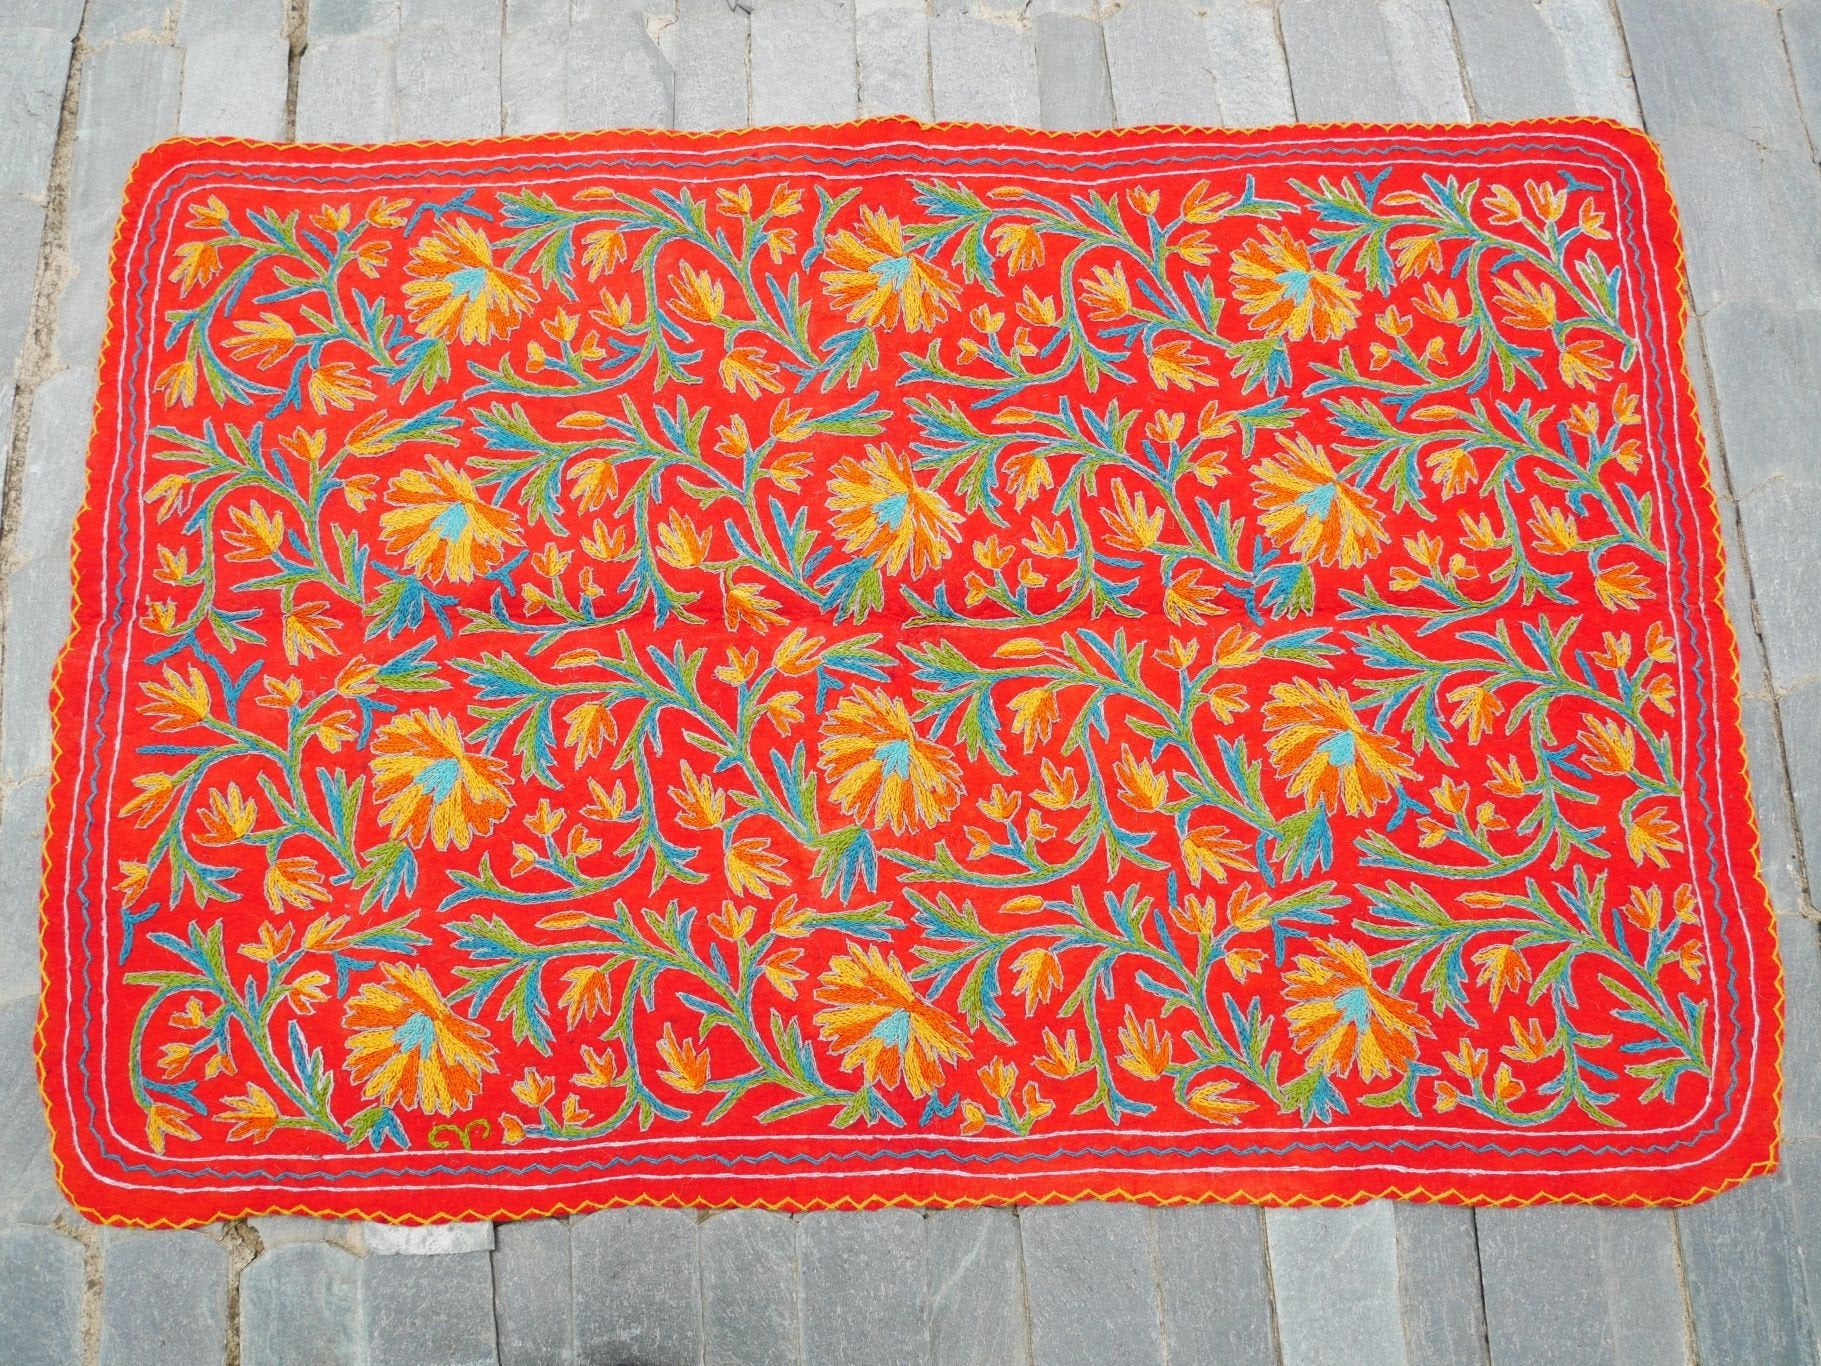 "Kashmiri ""Namda"" 6x4 hand felted and embroidered rug ""Indian summer"" made of pure wool for bohemian - rustic decor"